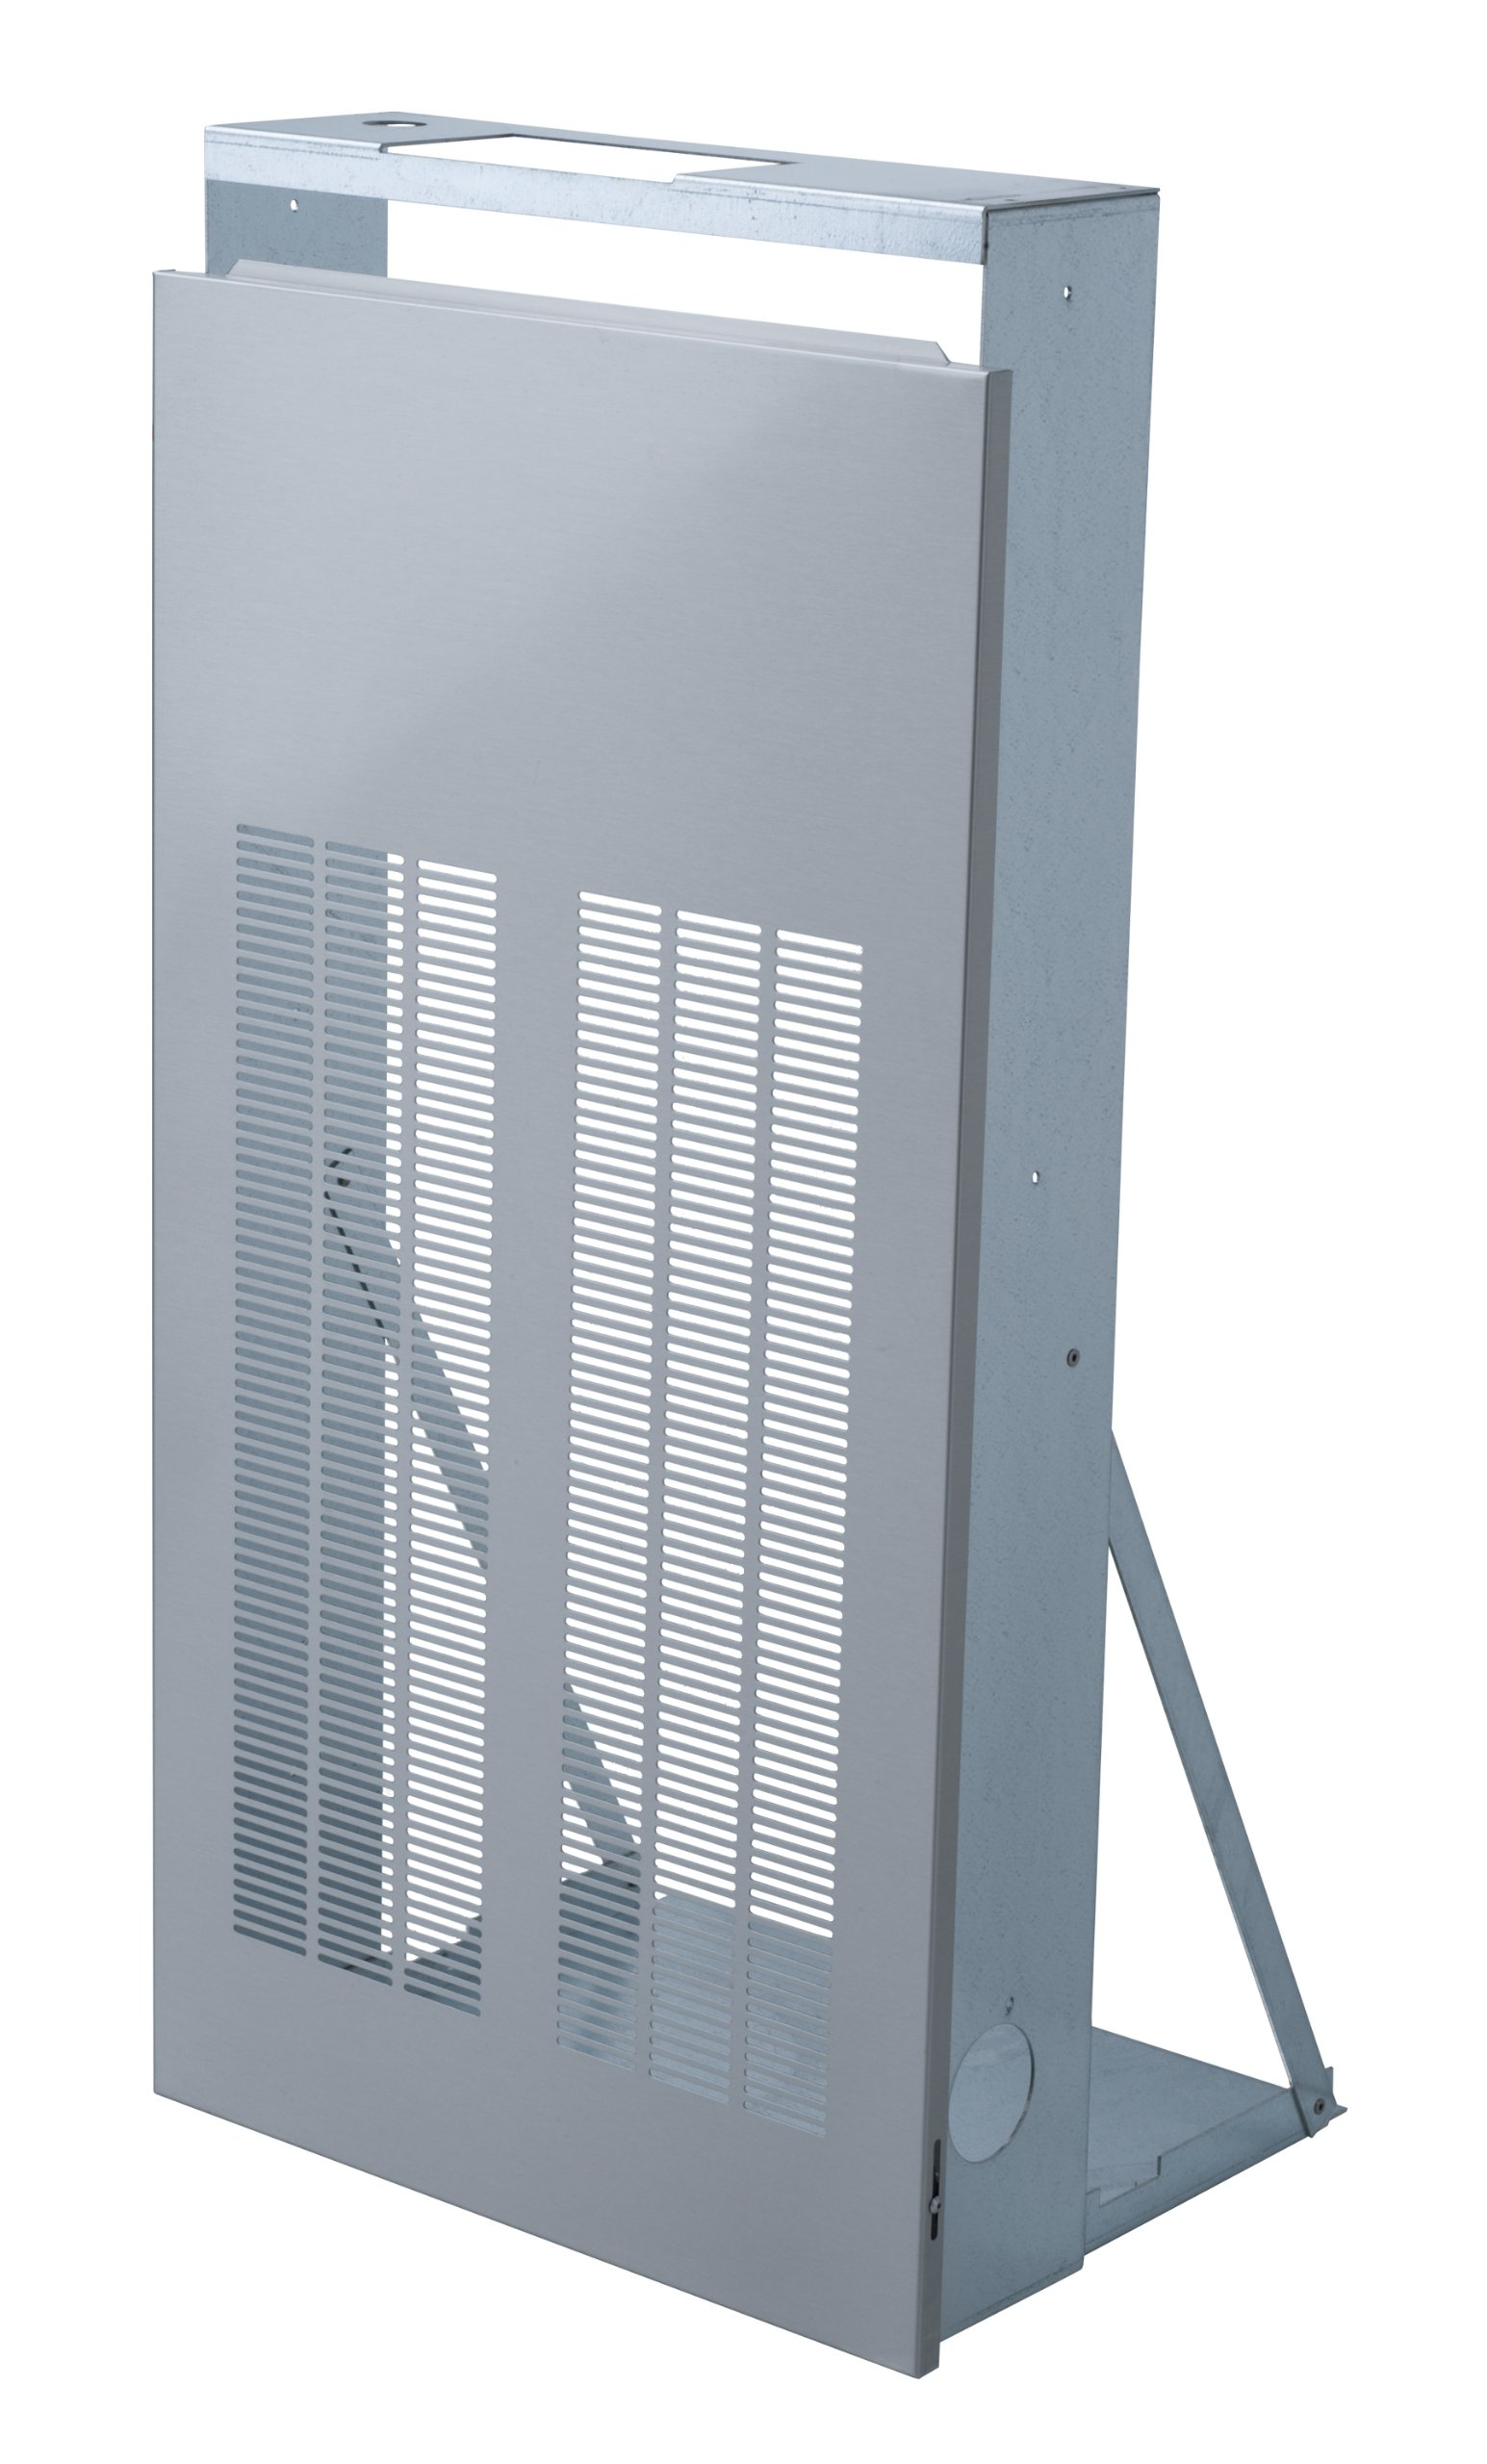 Haws MTGFR.HSC Galvanized Steel Mounting Frame with Grille, For Hydration Stations